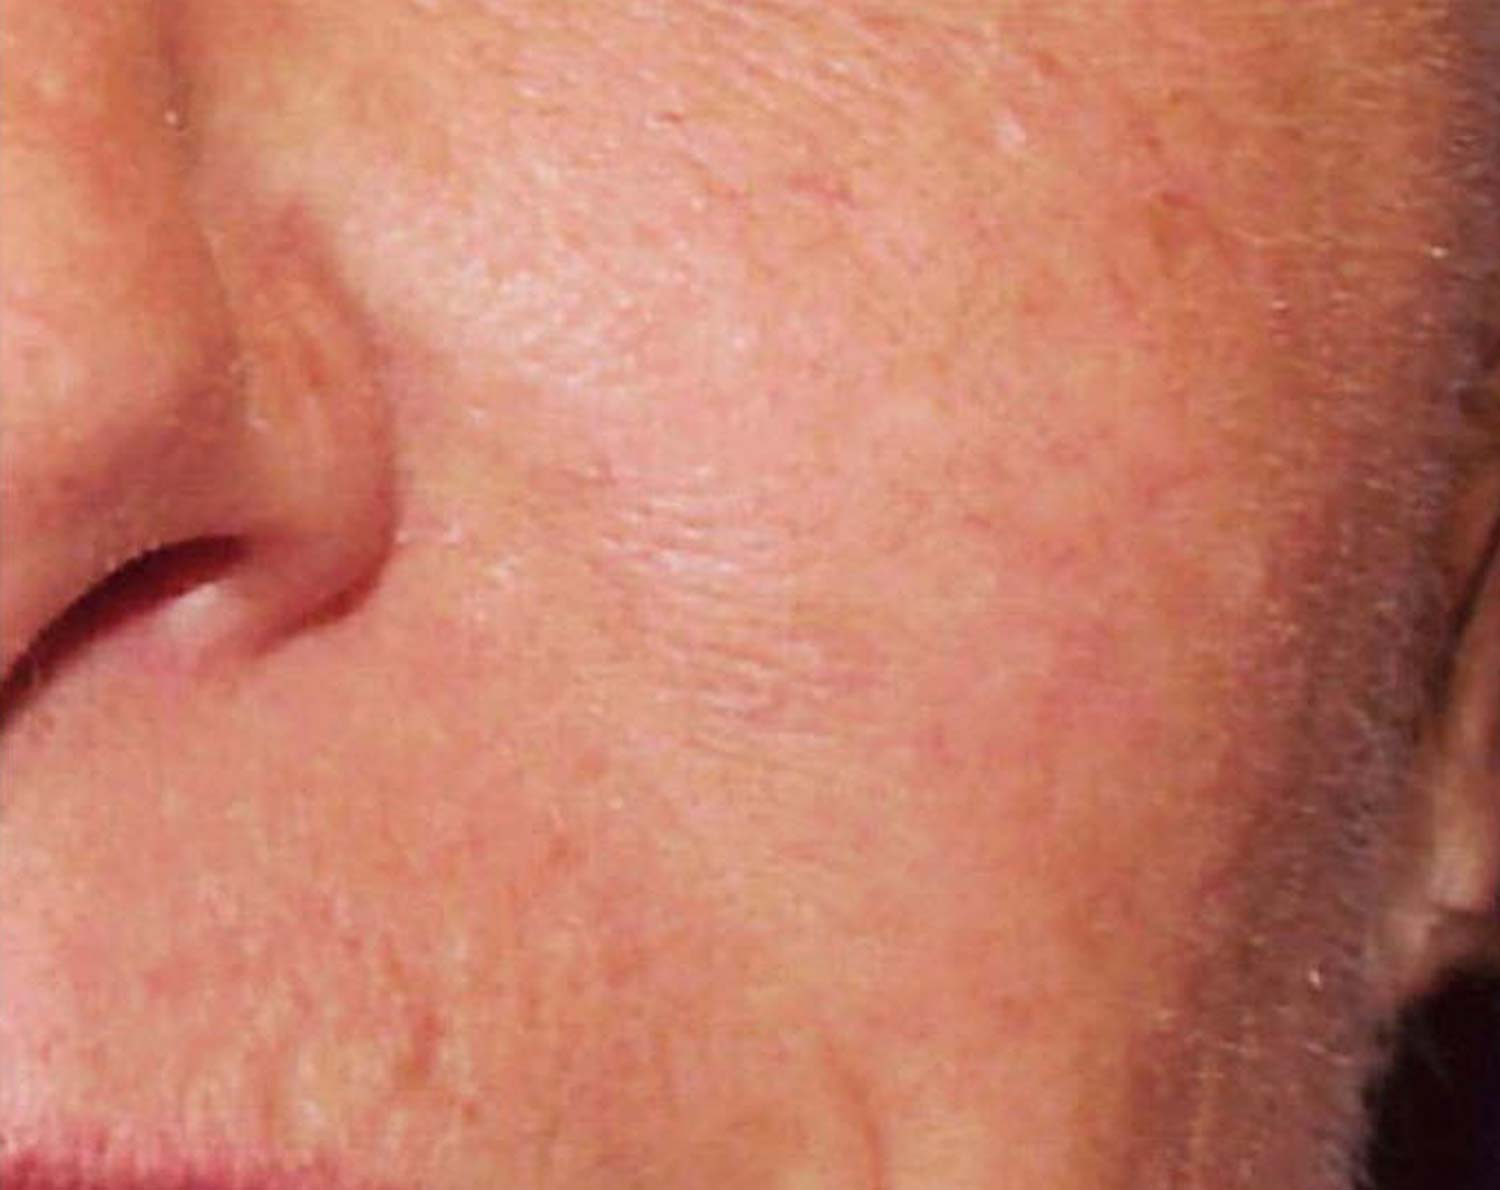 Spider veins on a patients face are completely gone after laser treatment.